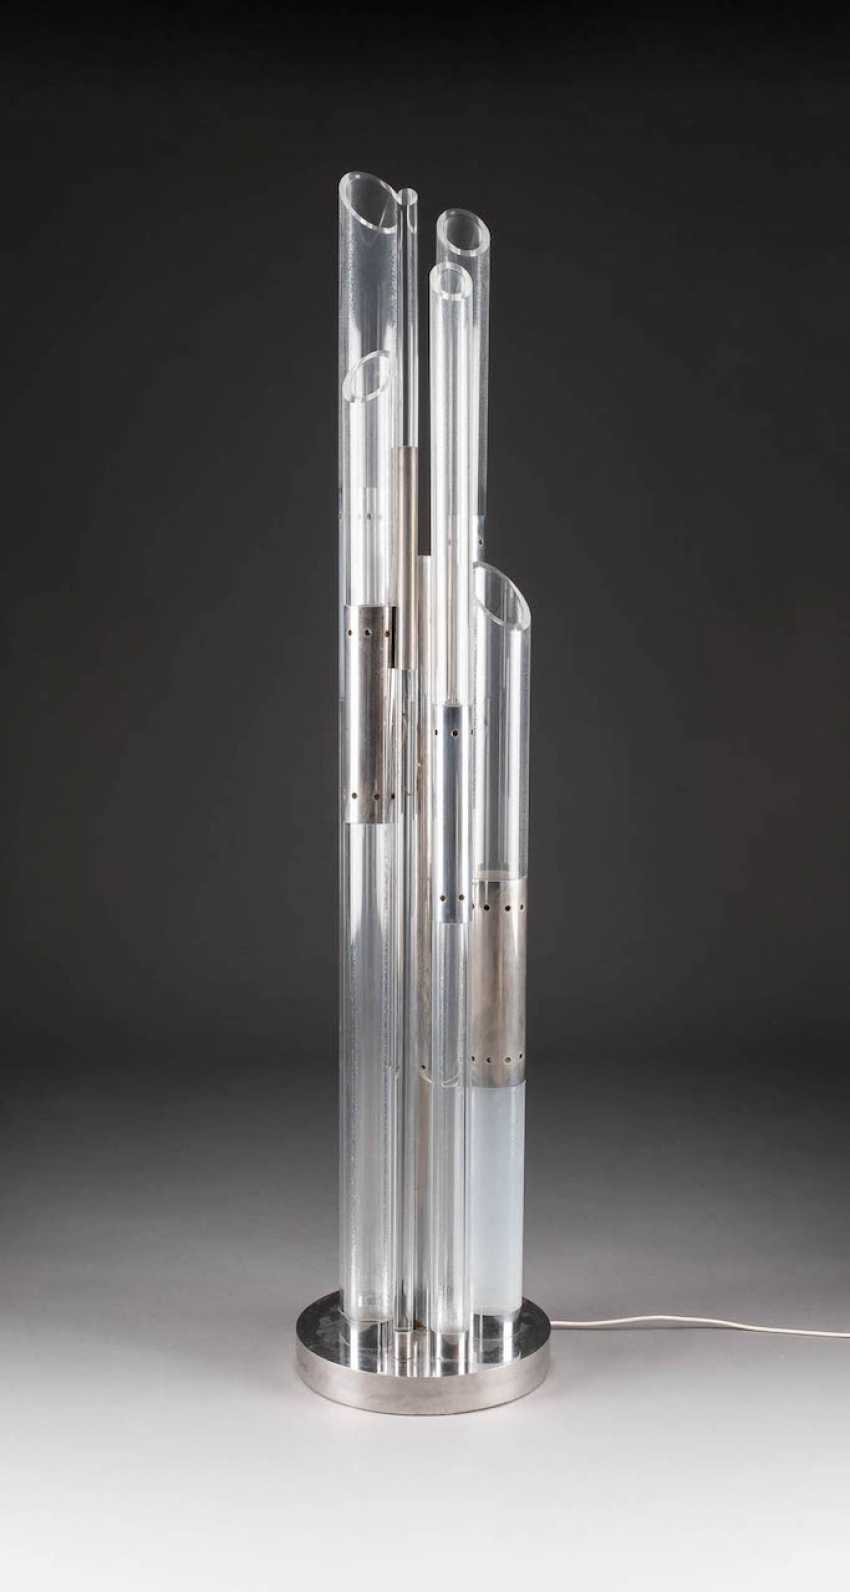 DESIGN FLOOR LAMP. Execution in the 1970s - photo 1